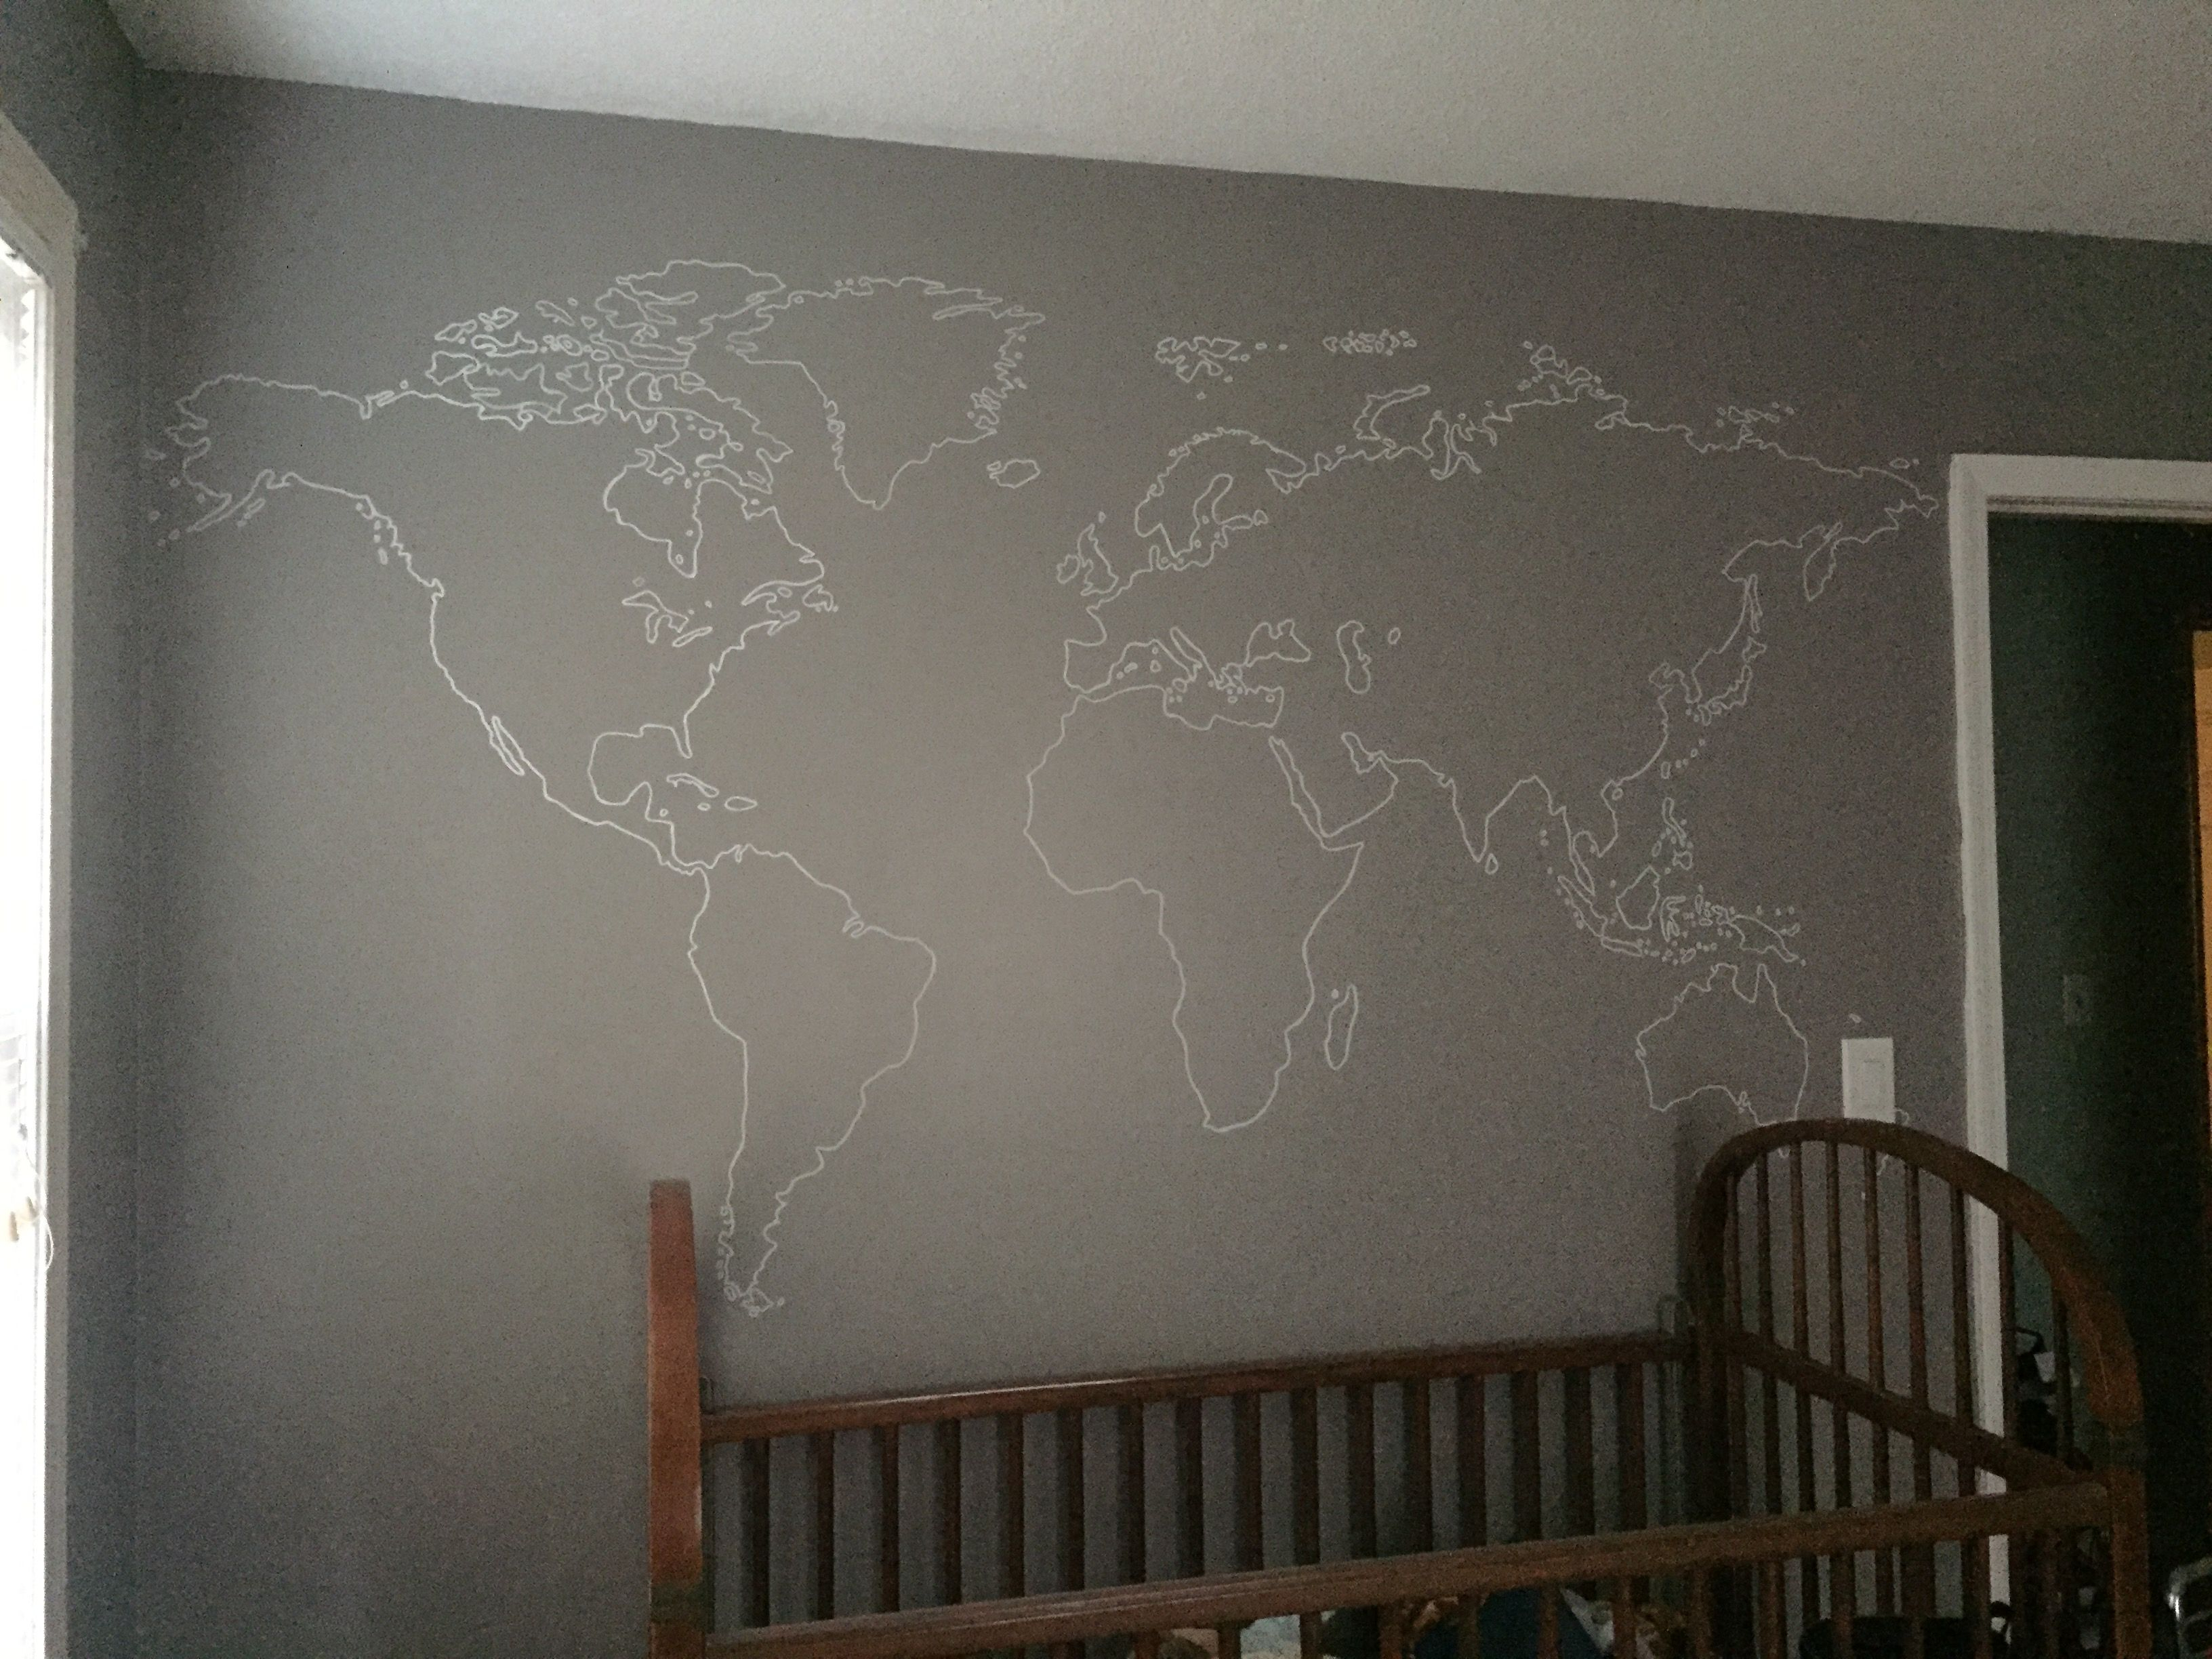 This is the world map that we traced using a projected image from a projector. We made it the size we wanted, went over the lines with a light pencil, then used a paint pen to trace over the pencil. It only took about 2 hours to complete and I am so happy with how it turned out! (this is for our son's aviator/airplane themed nursery)